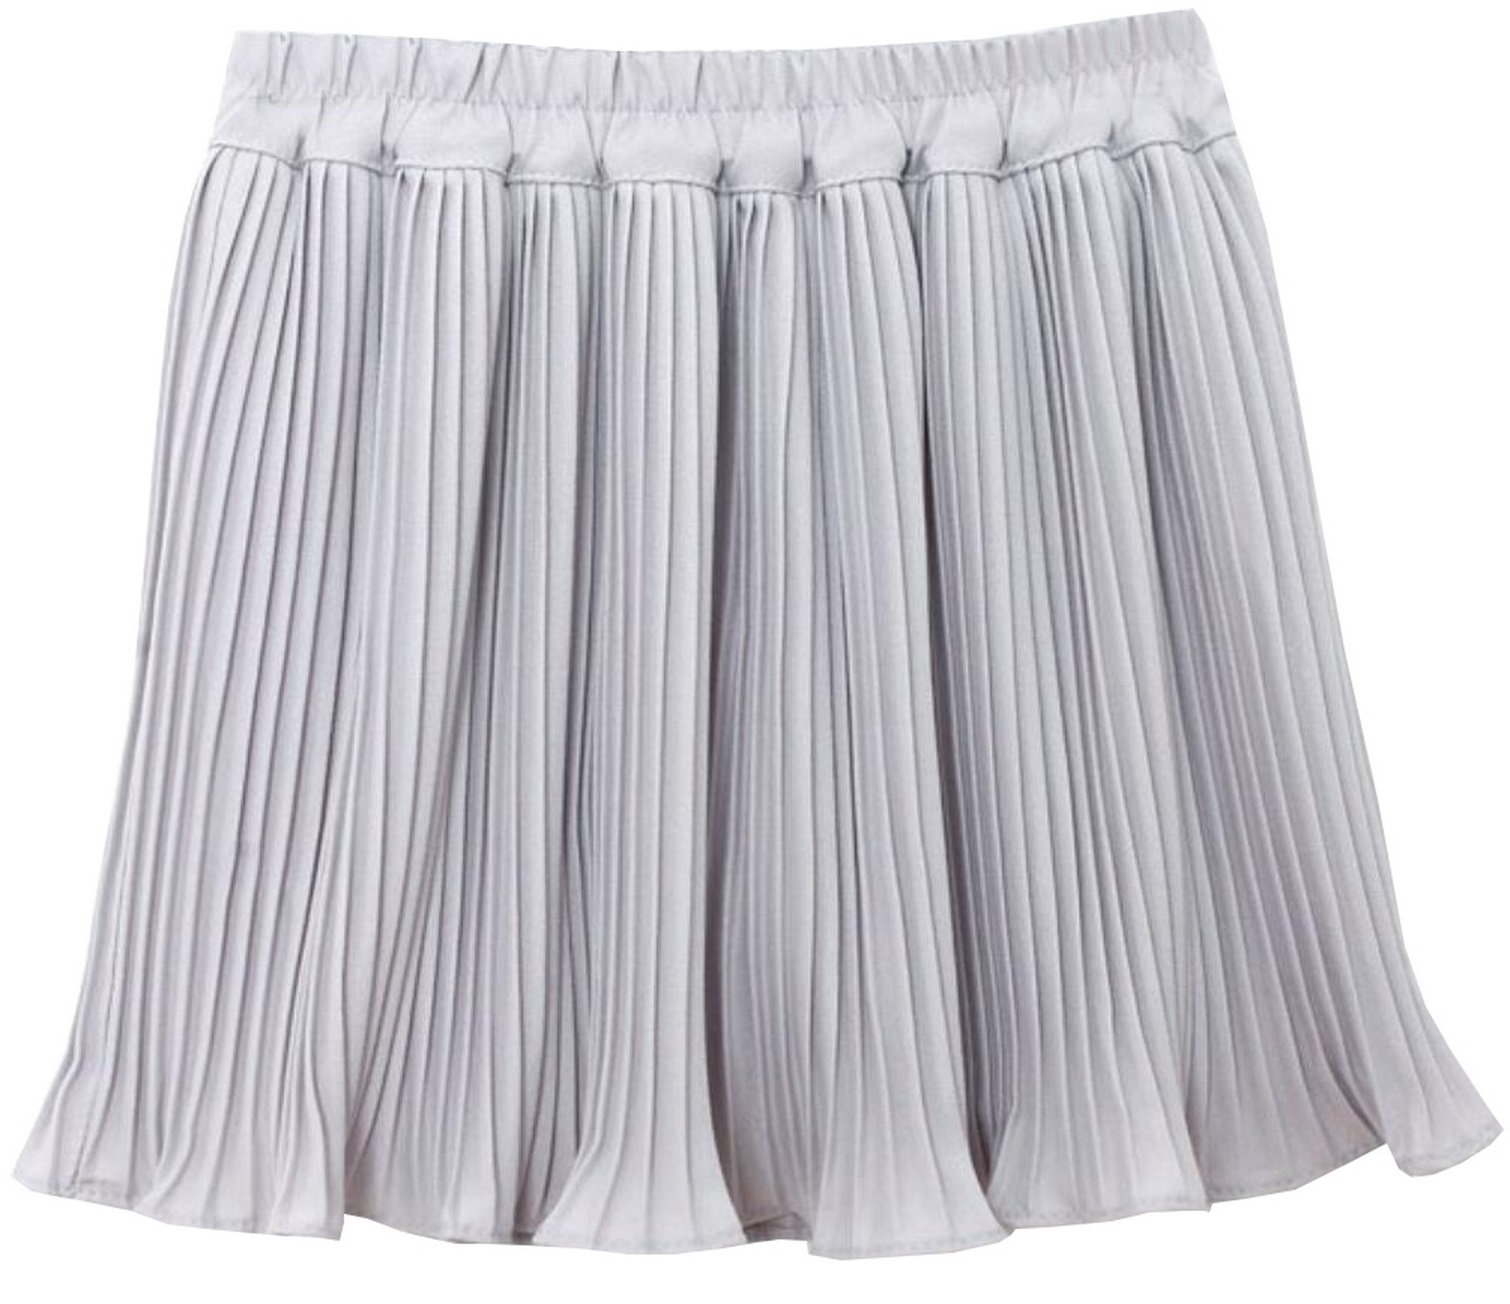 Foucome Maternity Pregnancy Pull on Style High Wasit Pleated Pregnancy Mini Skirts for Women Gray